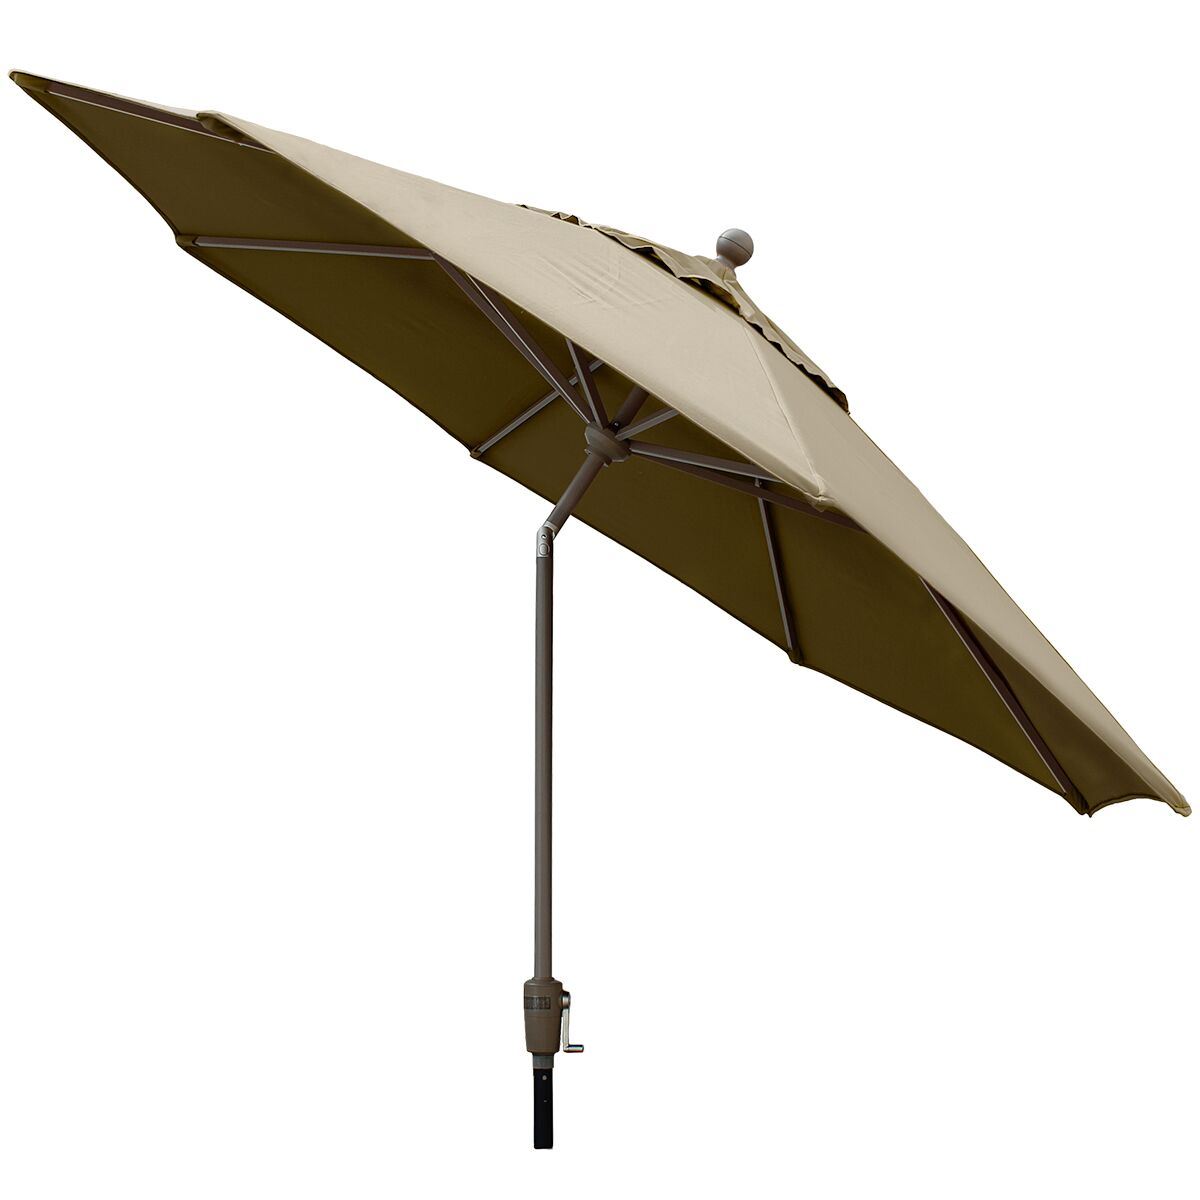 Sunbrella 9' Market Umbrella Color: Antique Beige